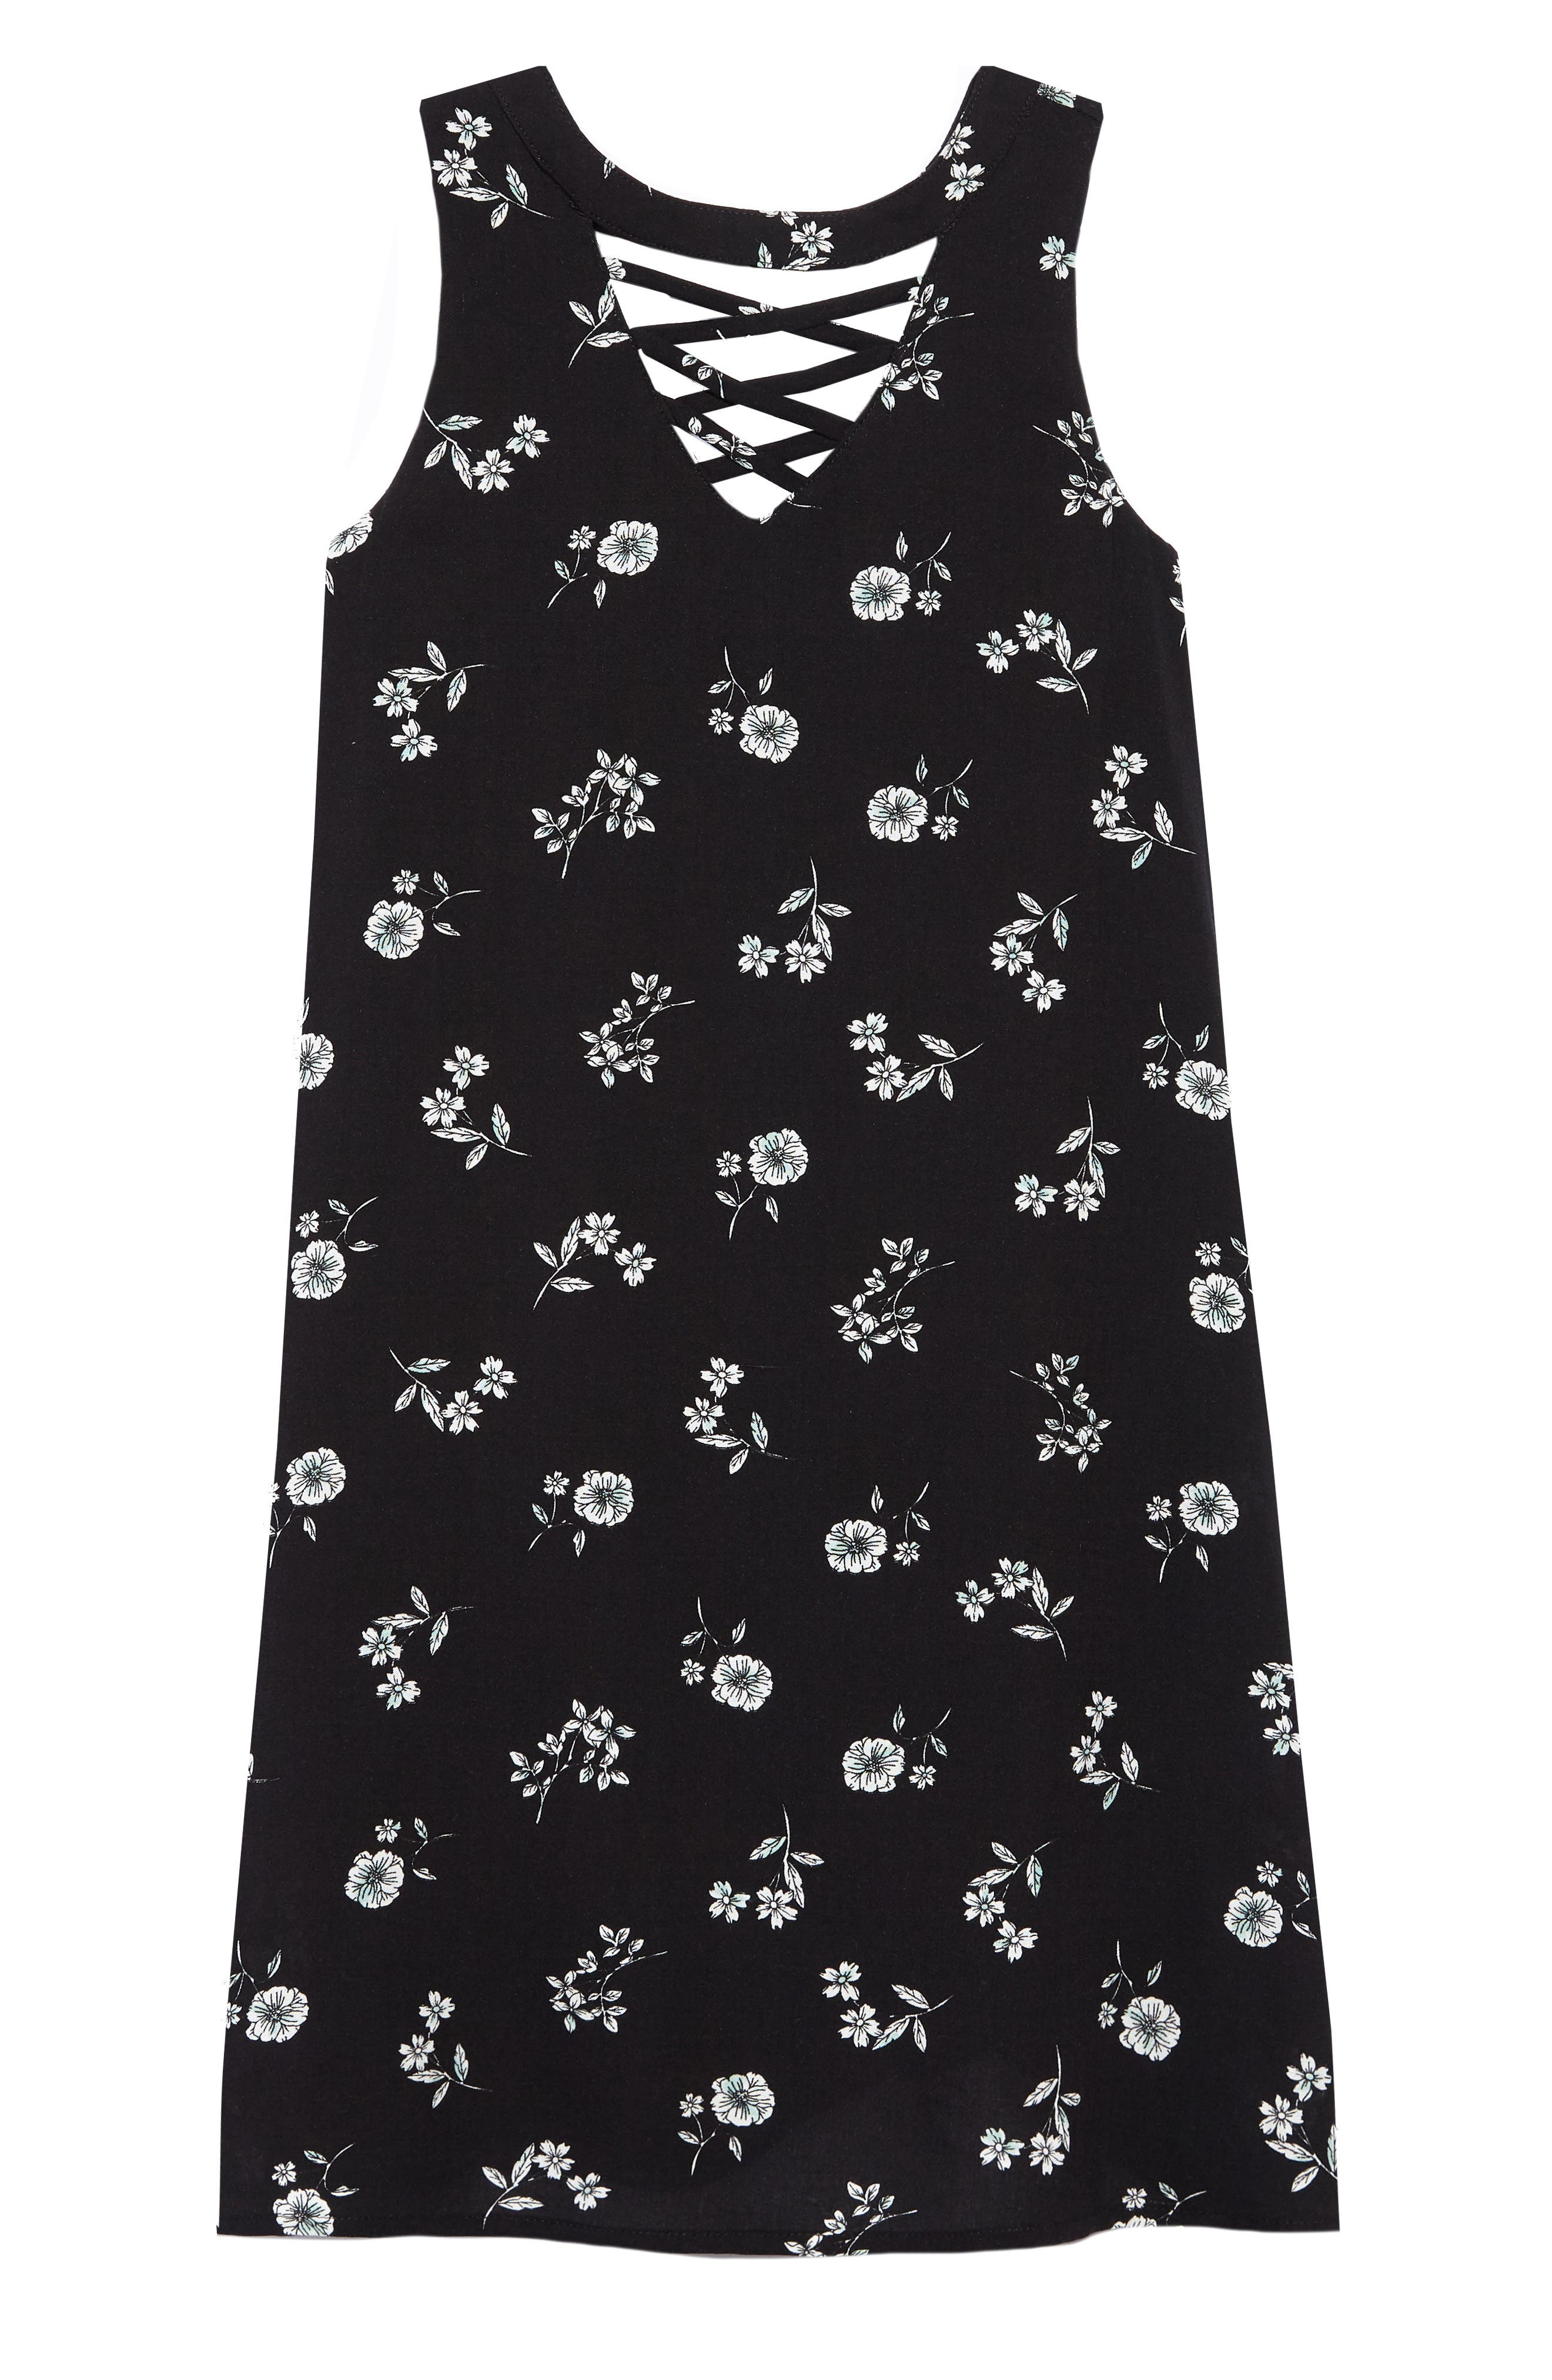 Alternate Image 1 Selected - Truly Me Floral Sleeveless Shift Dress (Big Girls)